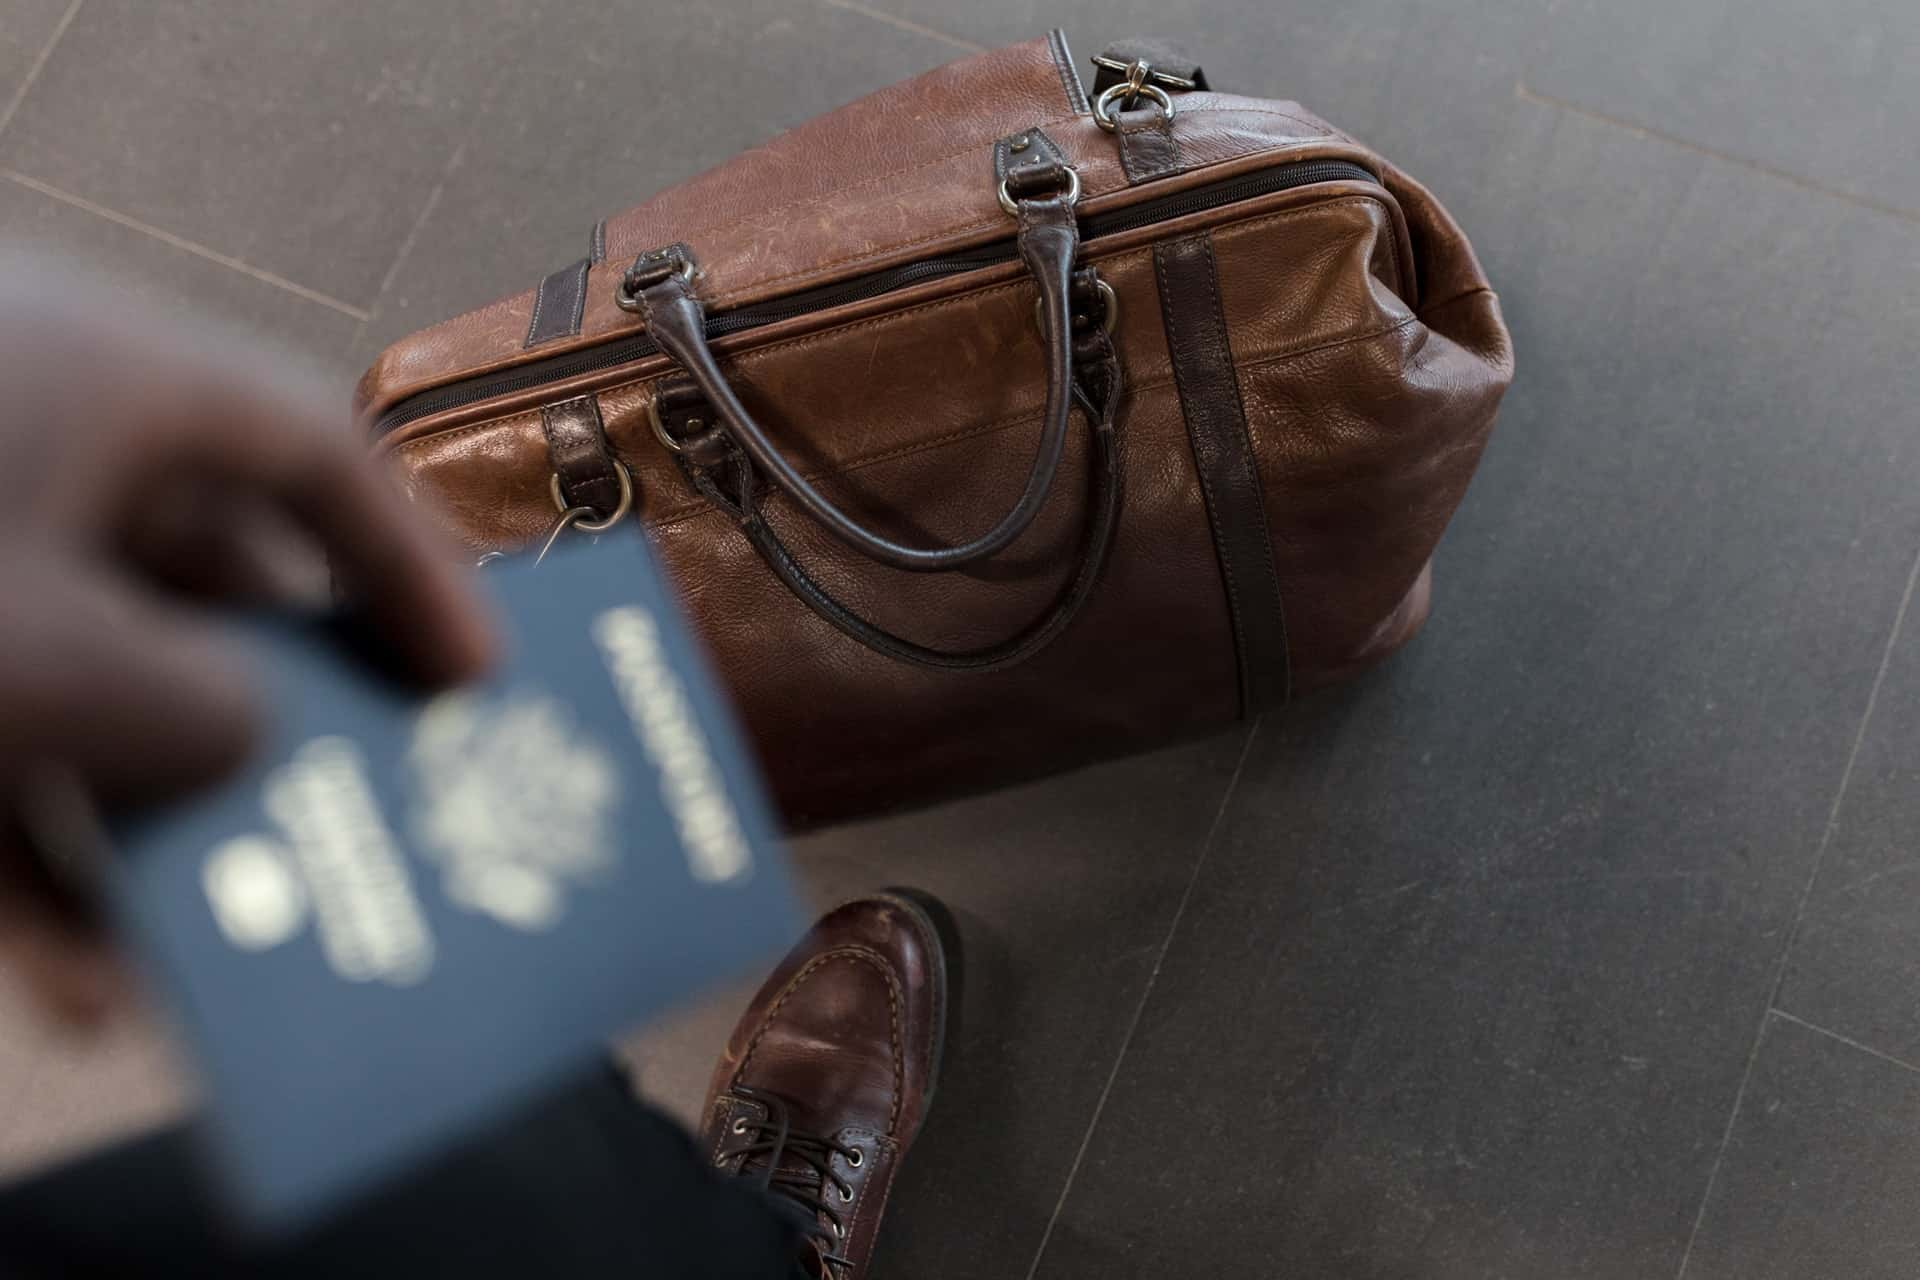 Holiday Packing Checklist Preparation Pack and check your ID & Passport on the list